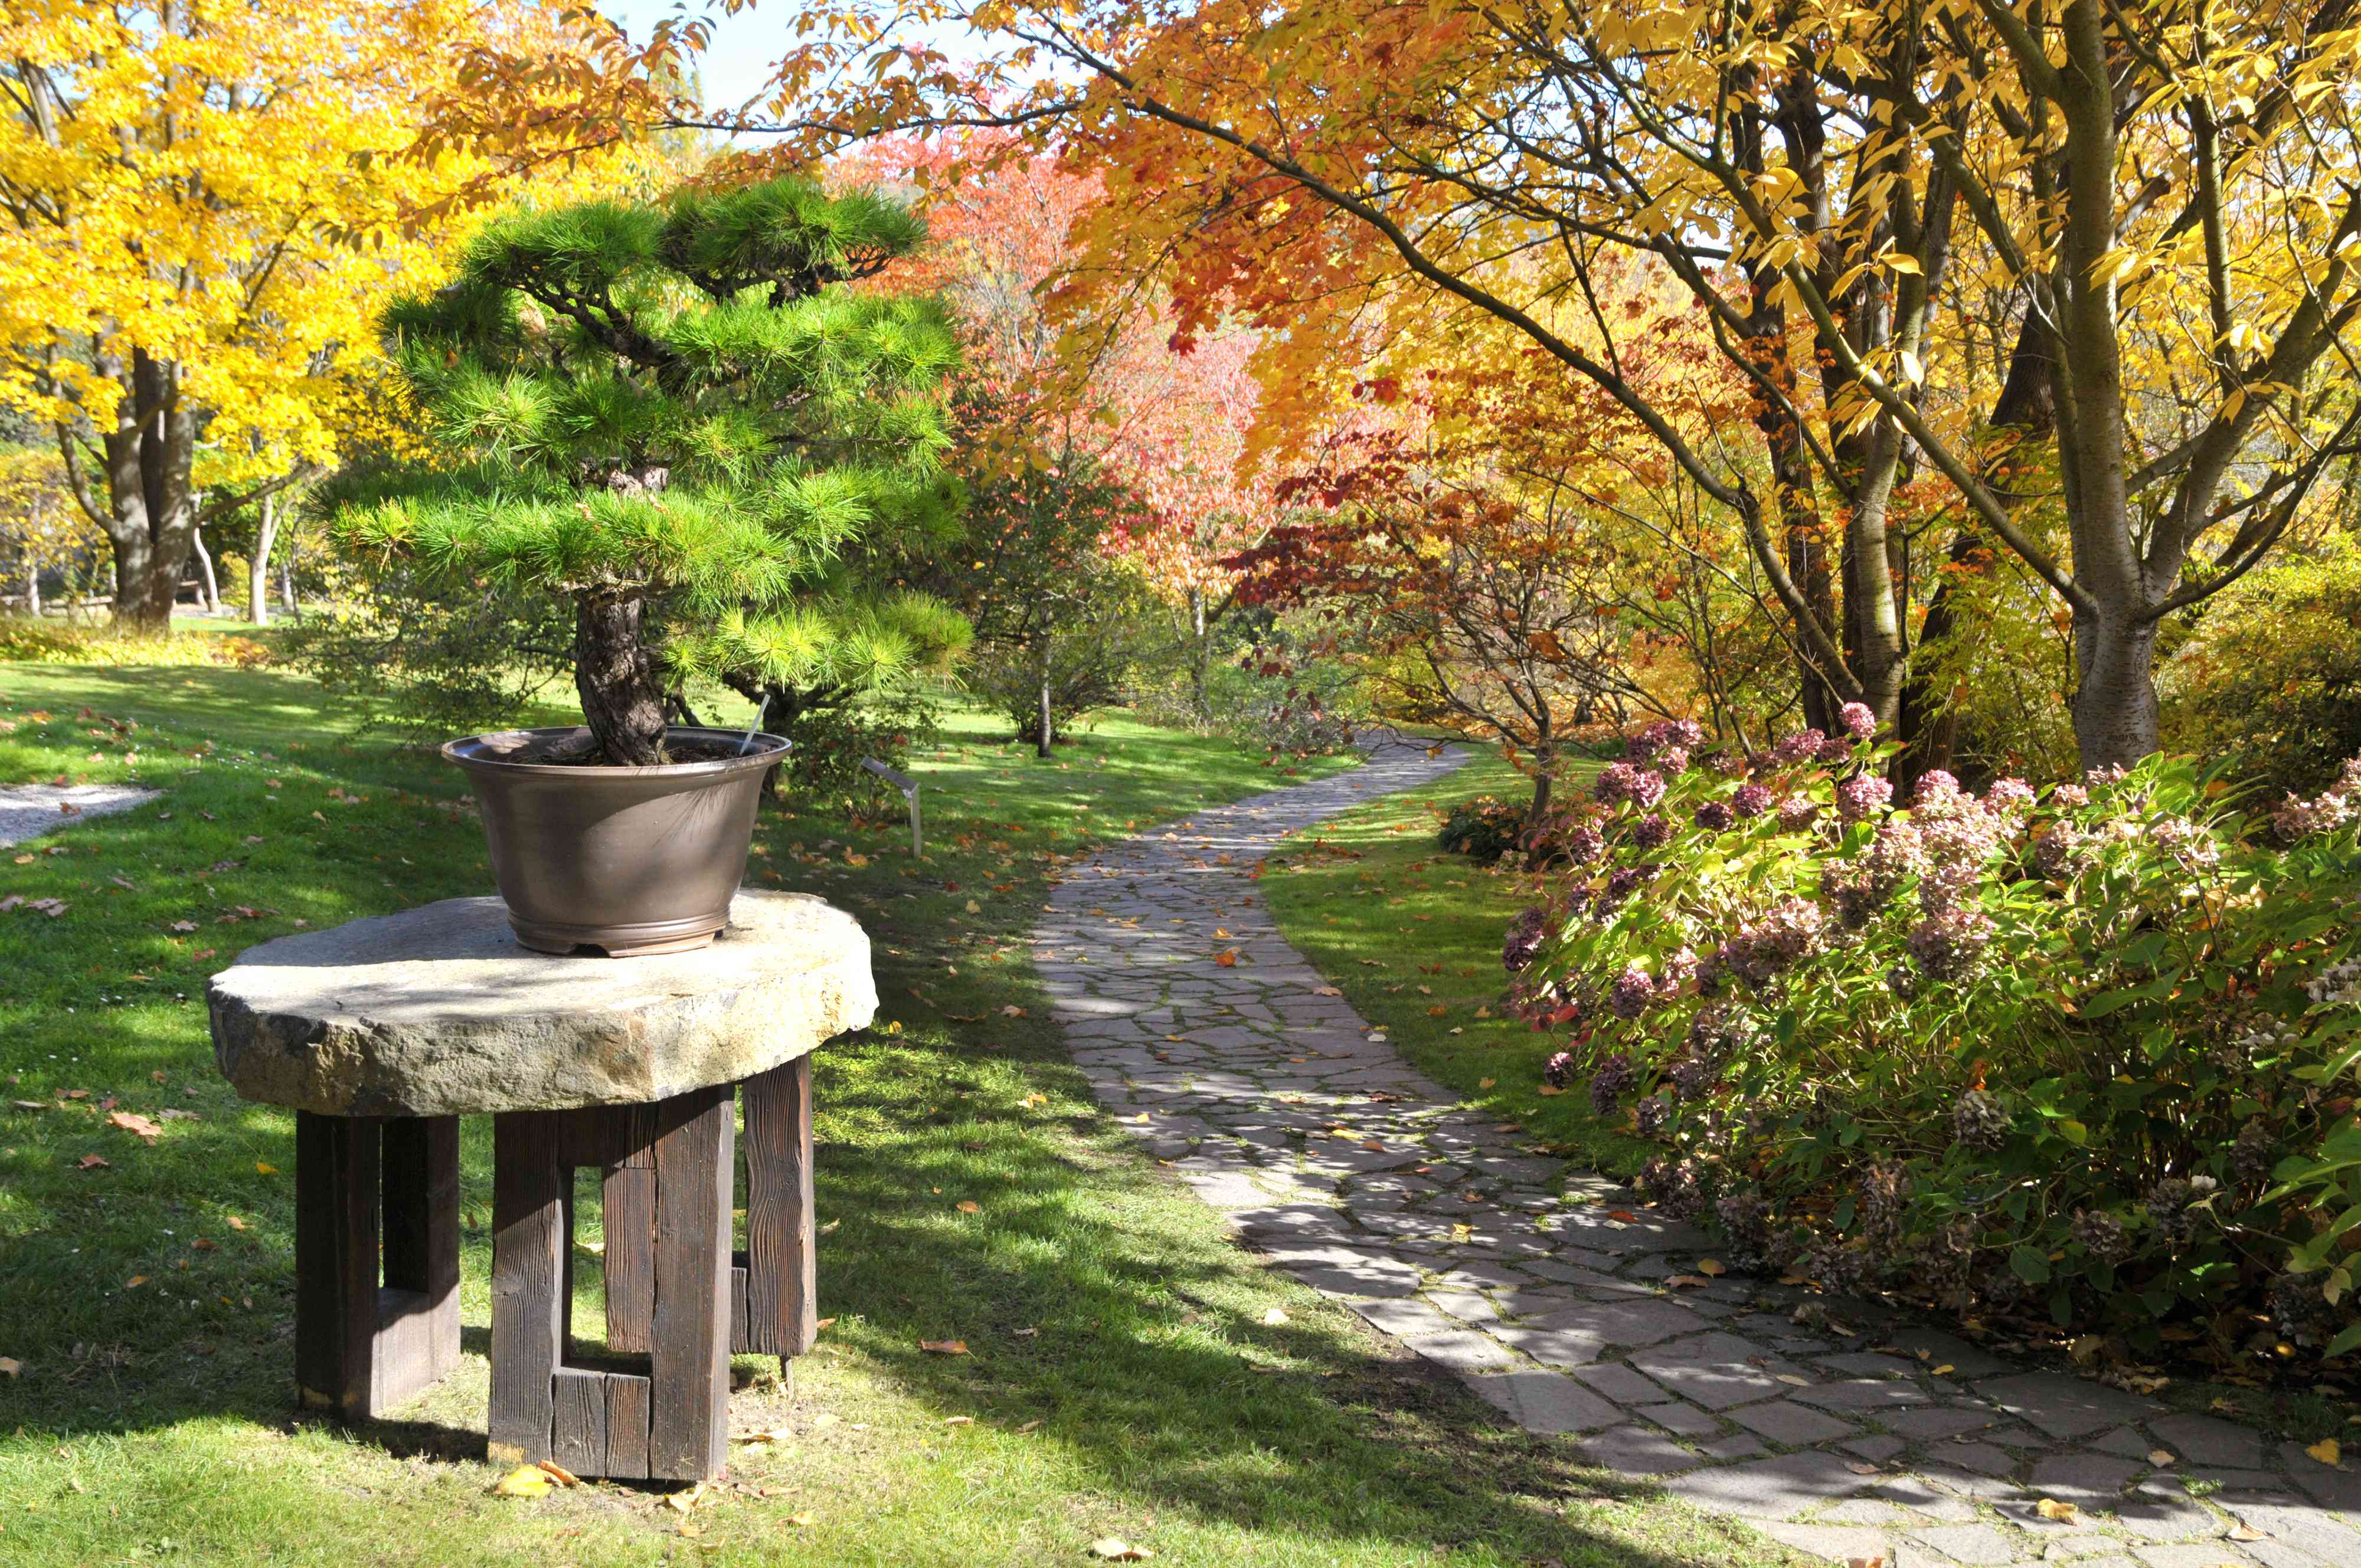 Pine bonsai tree in small gray pot on stone platform next to pathway in woods